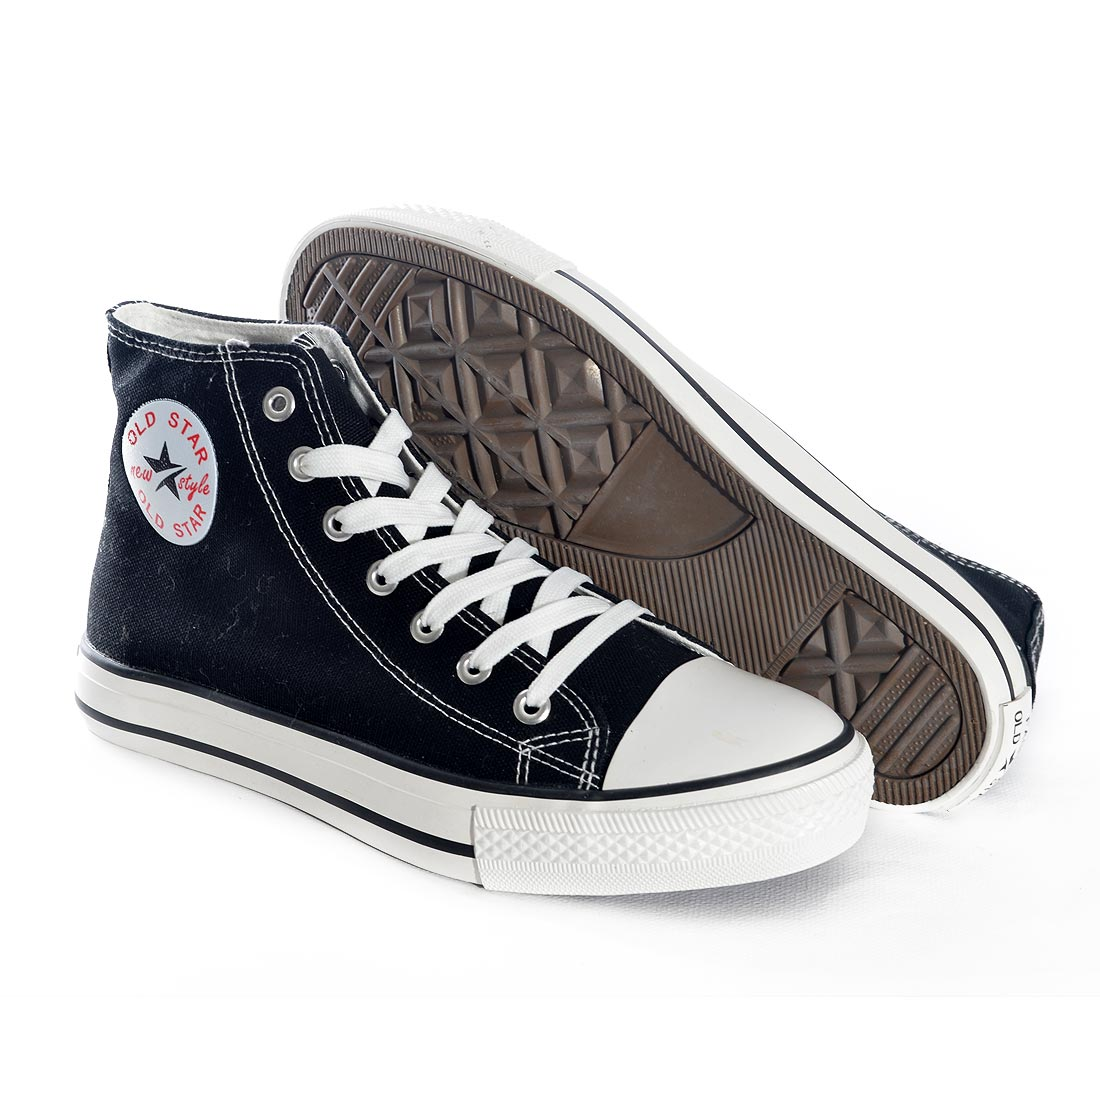 7abd310be24 Old Star sneakers -2357 – khazanti.com